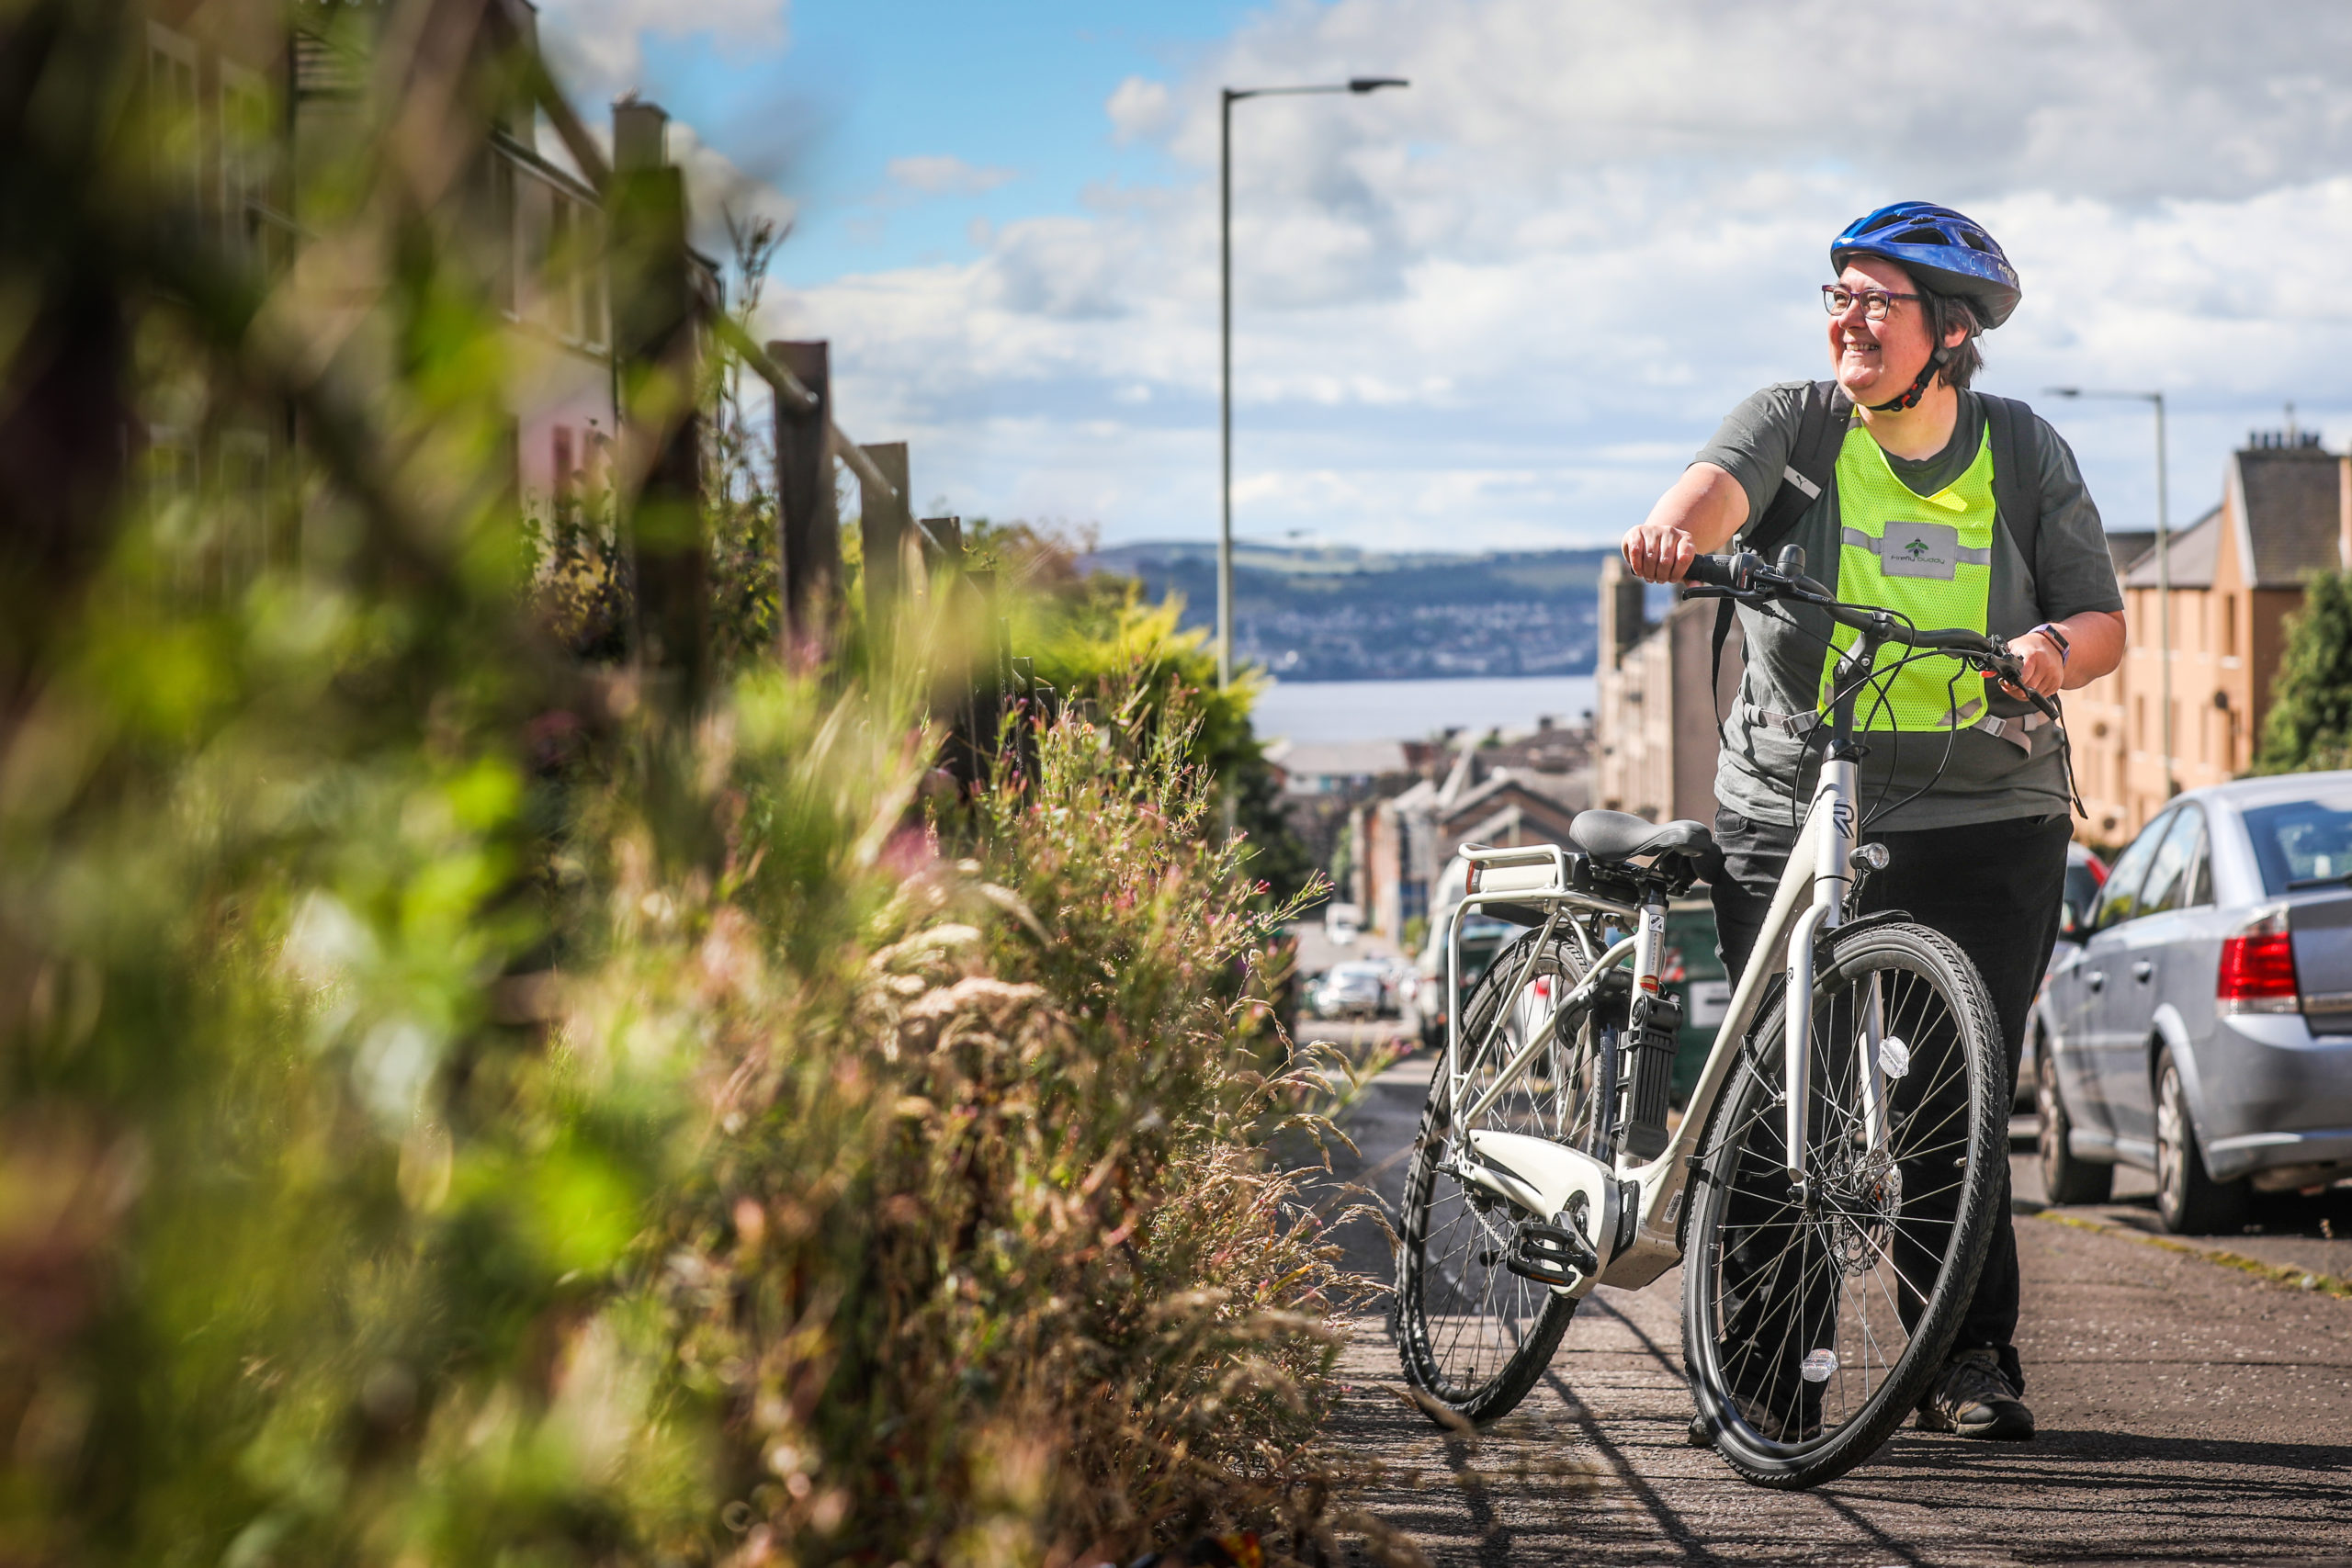 The Courier, CR0022205, Impact news, Jon Brady story. Case study cyclist Heather McKenzie and her eBike - Heather has started cycling for the first time during lockdown. Picture shows; Heather McKenzie and her e-bike. Monday 6th July, 2020. Mhairi Edwards/DCT Media